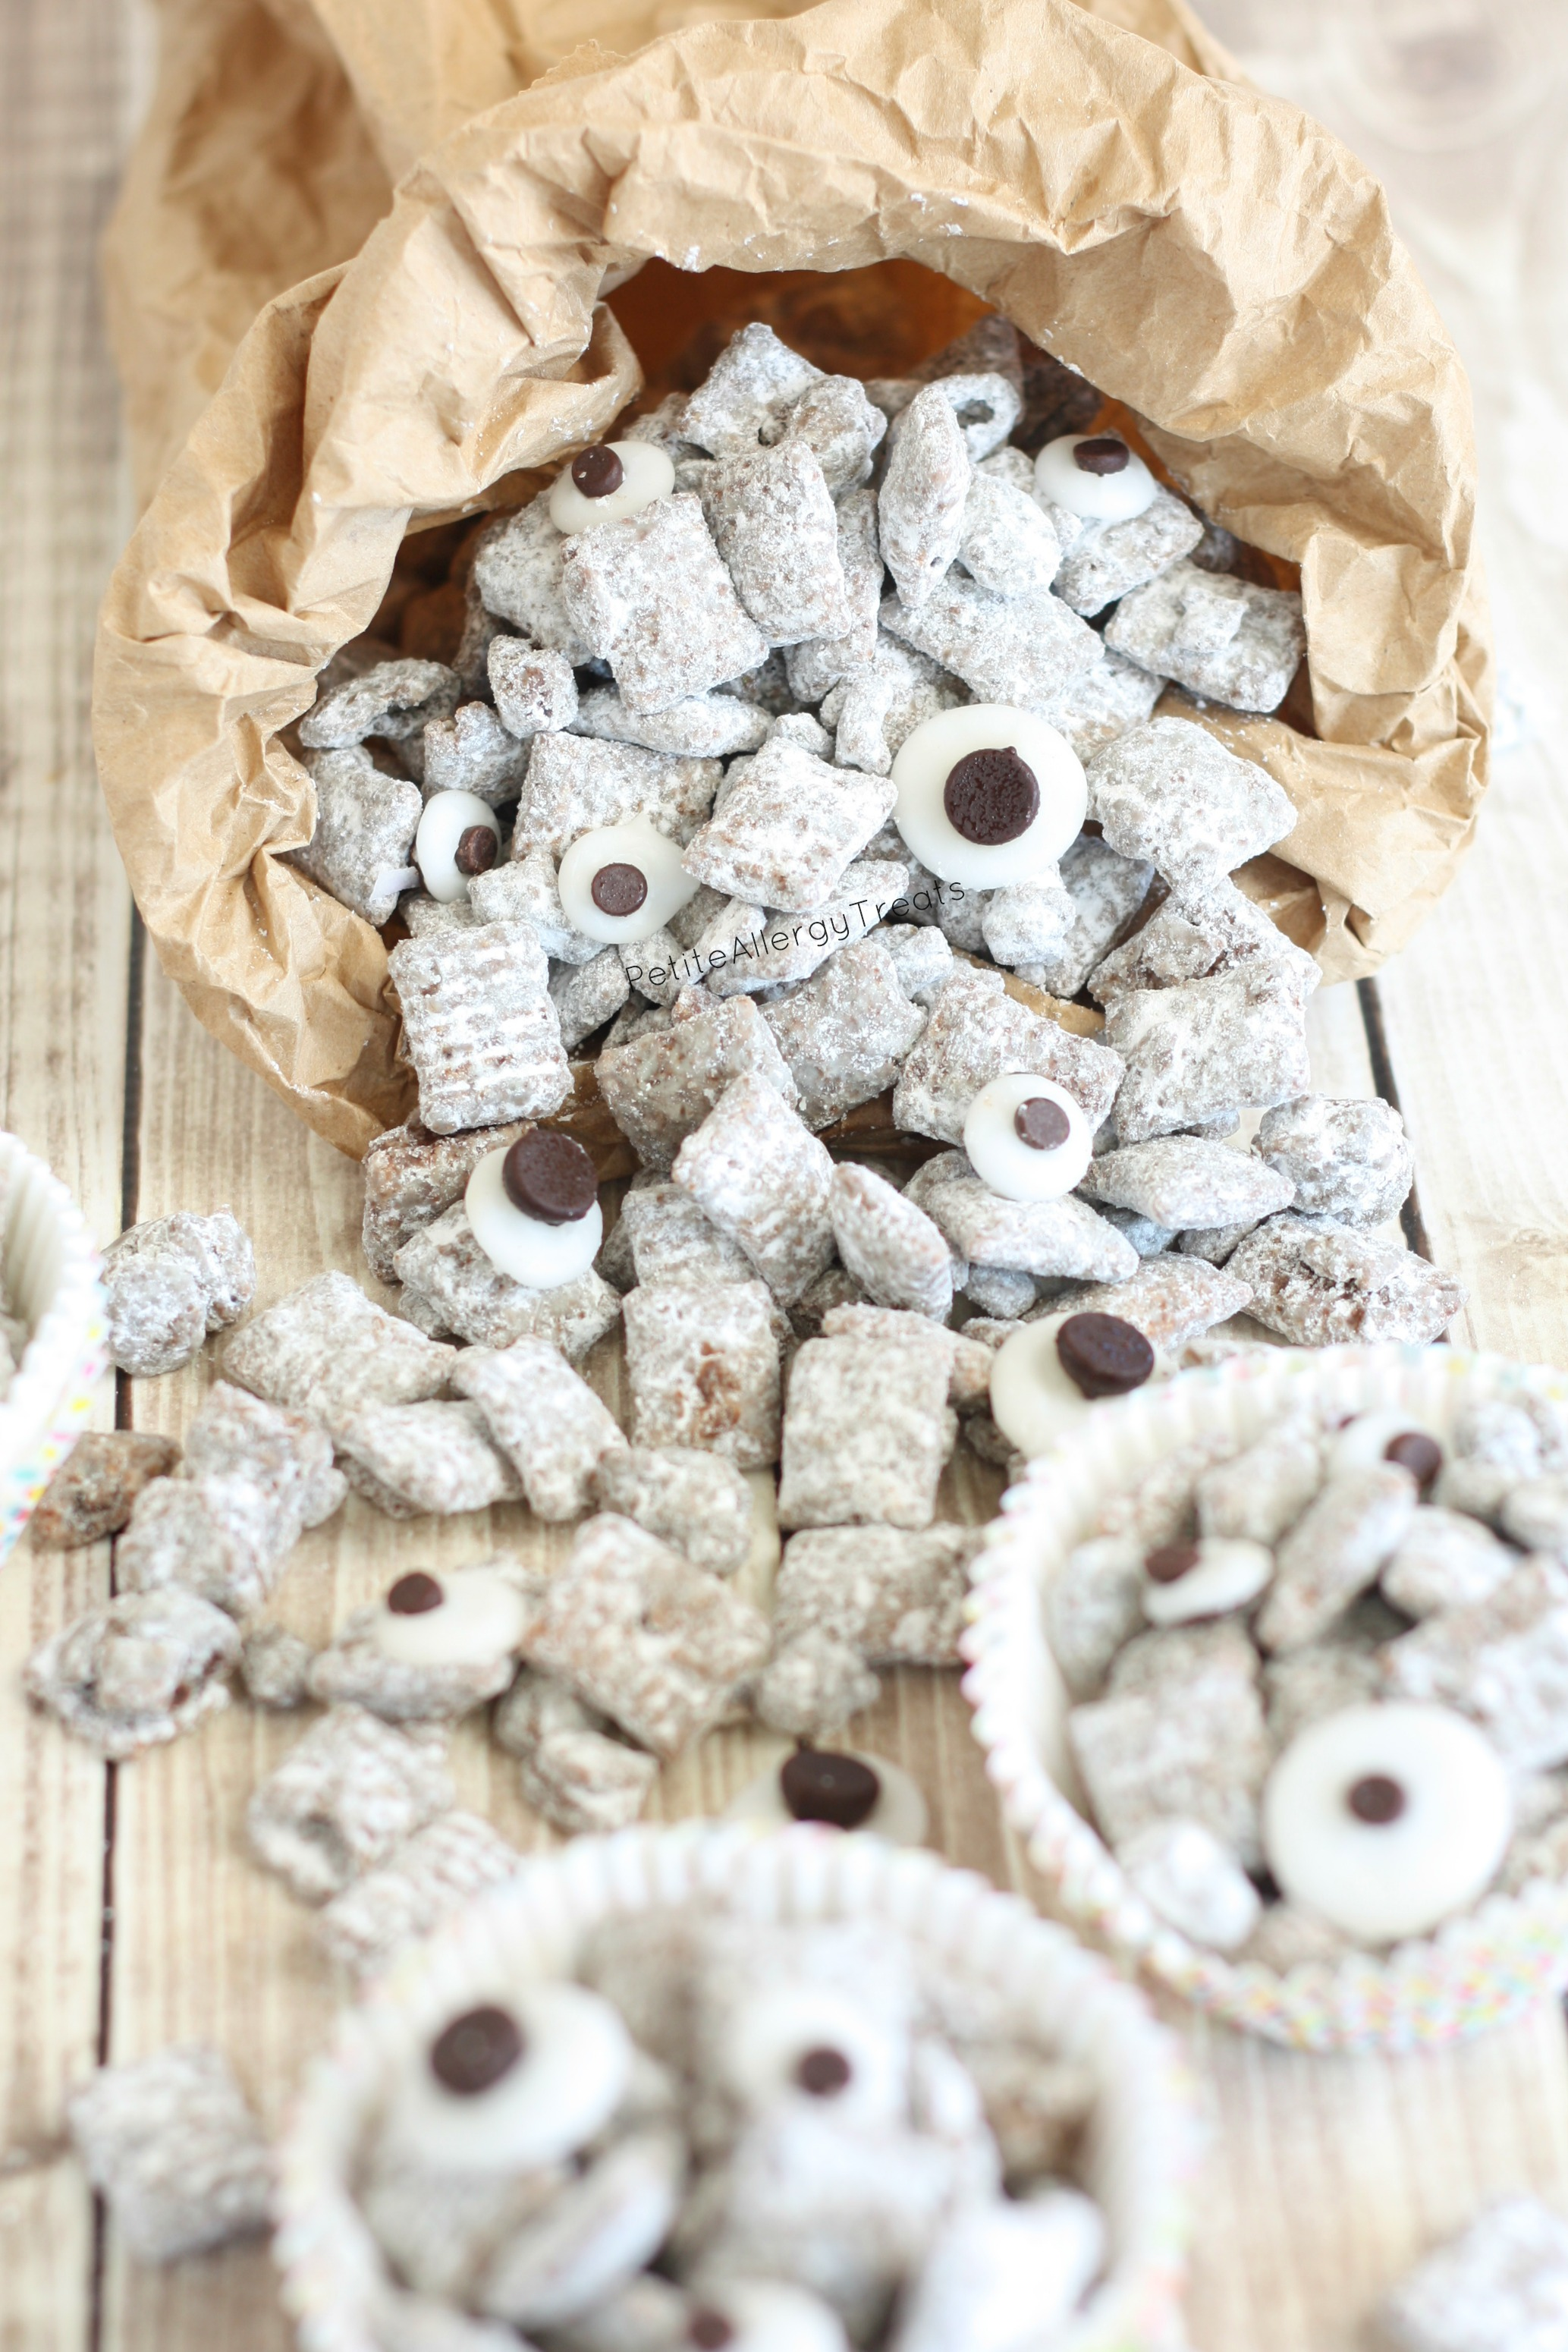 Nut Free Muddy Buddies Monster Munch Puppy Chow Peanut Free Petite Allergy Treats